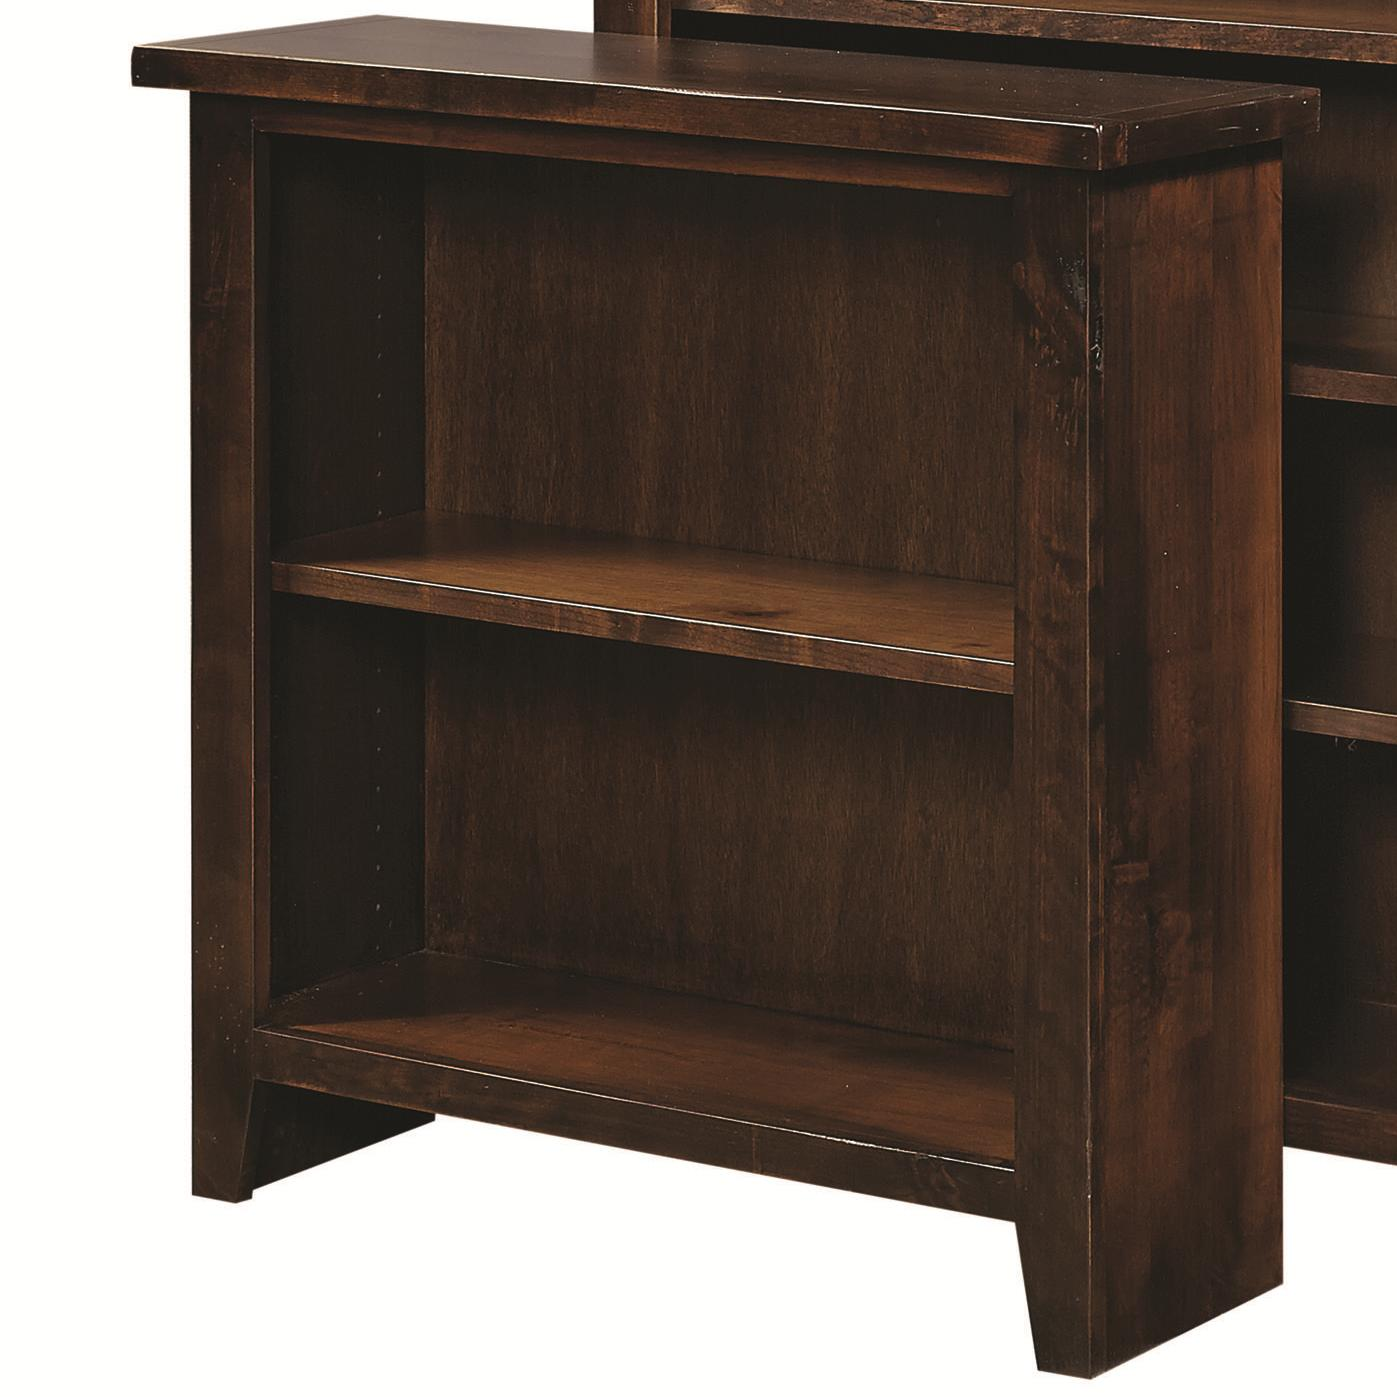 Small Bookcase with 2 Adjustable Shelves